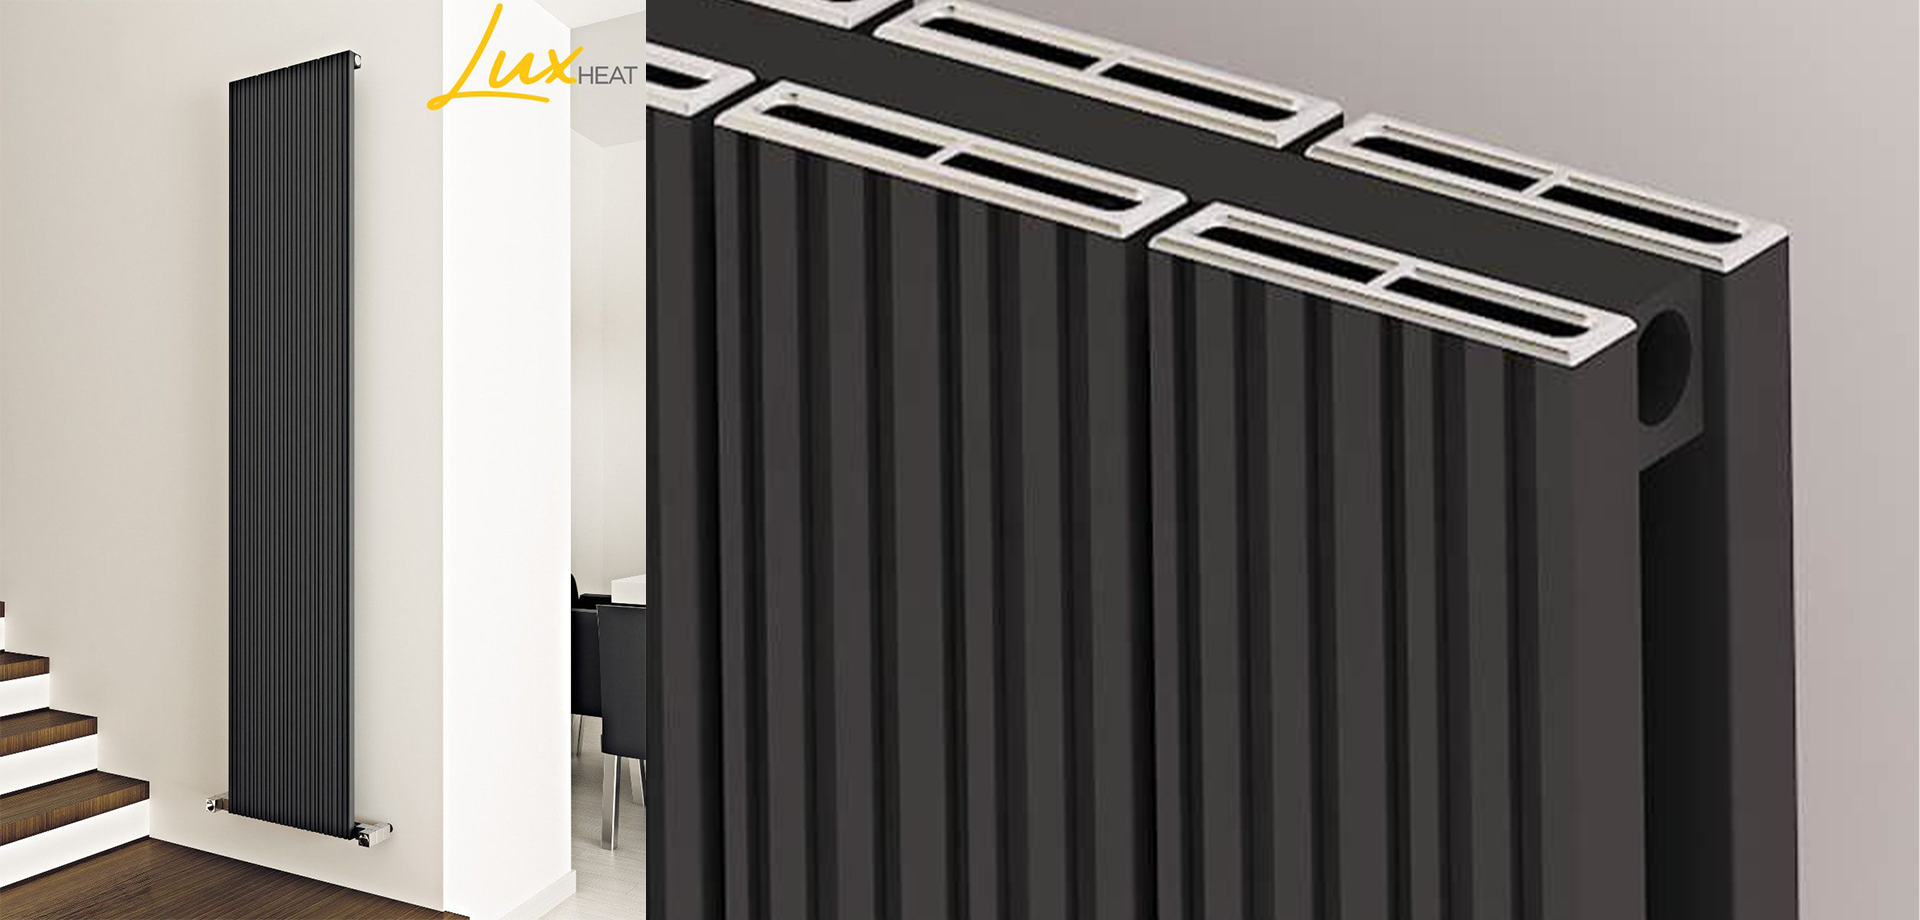 Black Radiators Are The Biggest Trend In Home Improvements Right Now